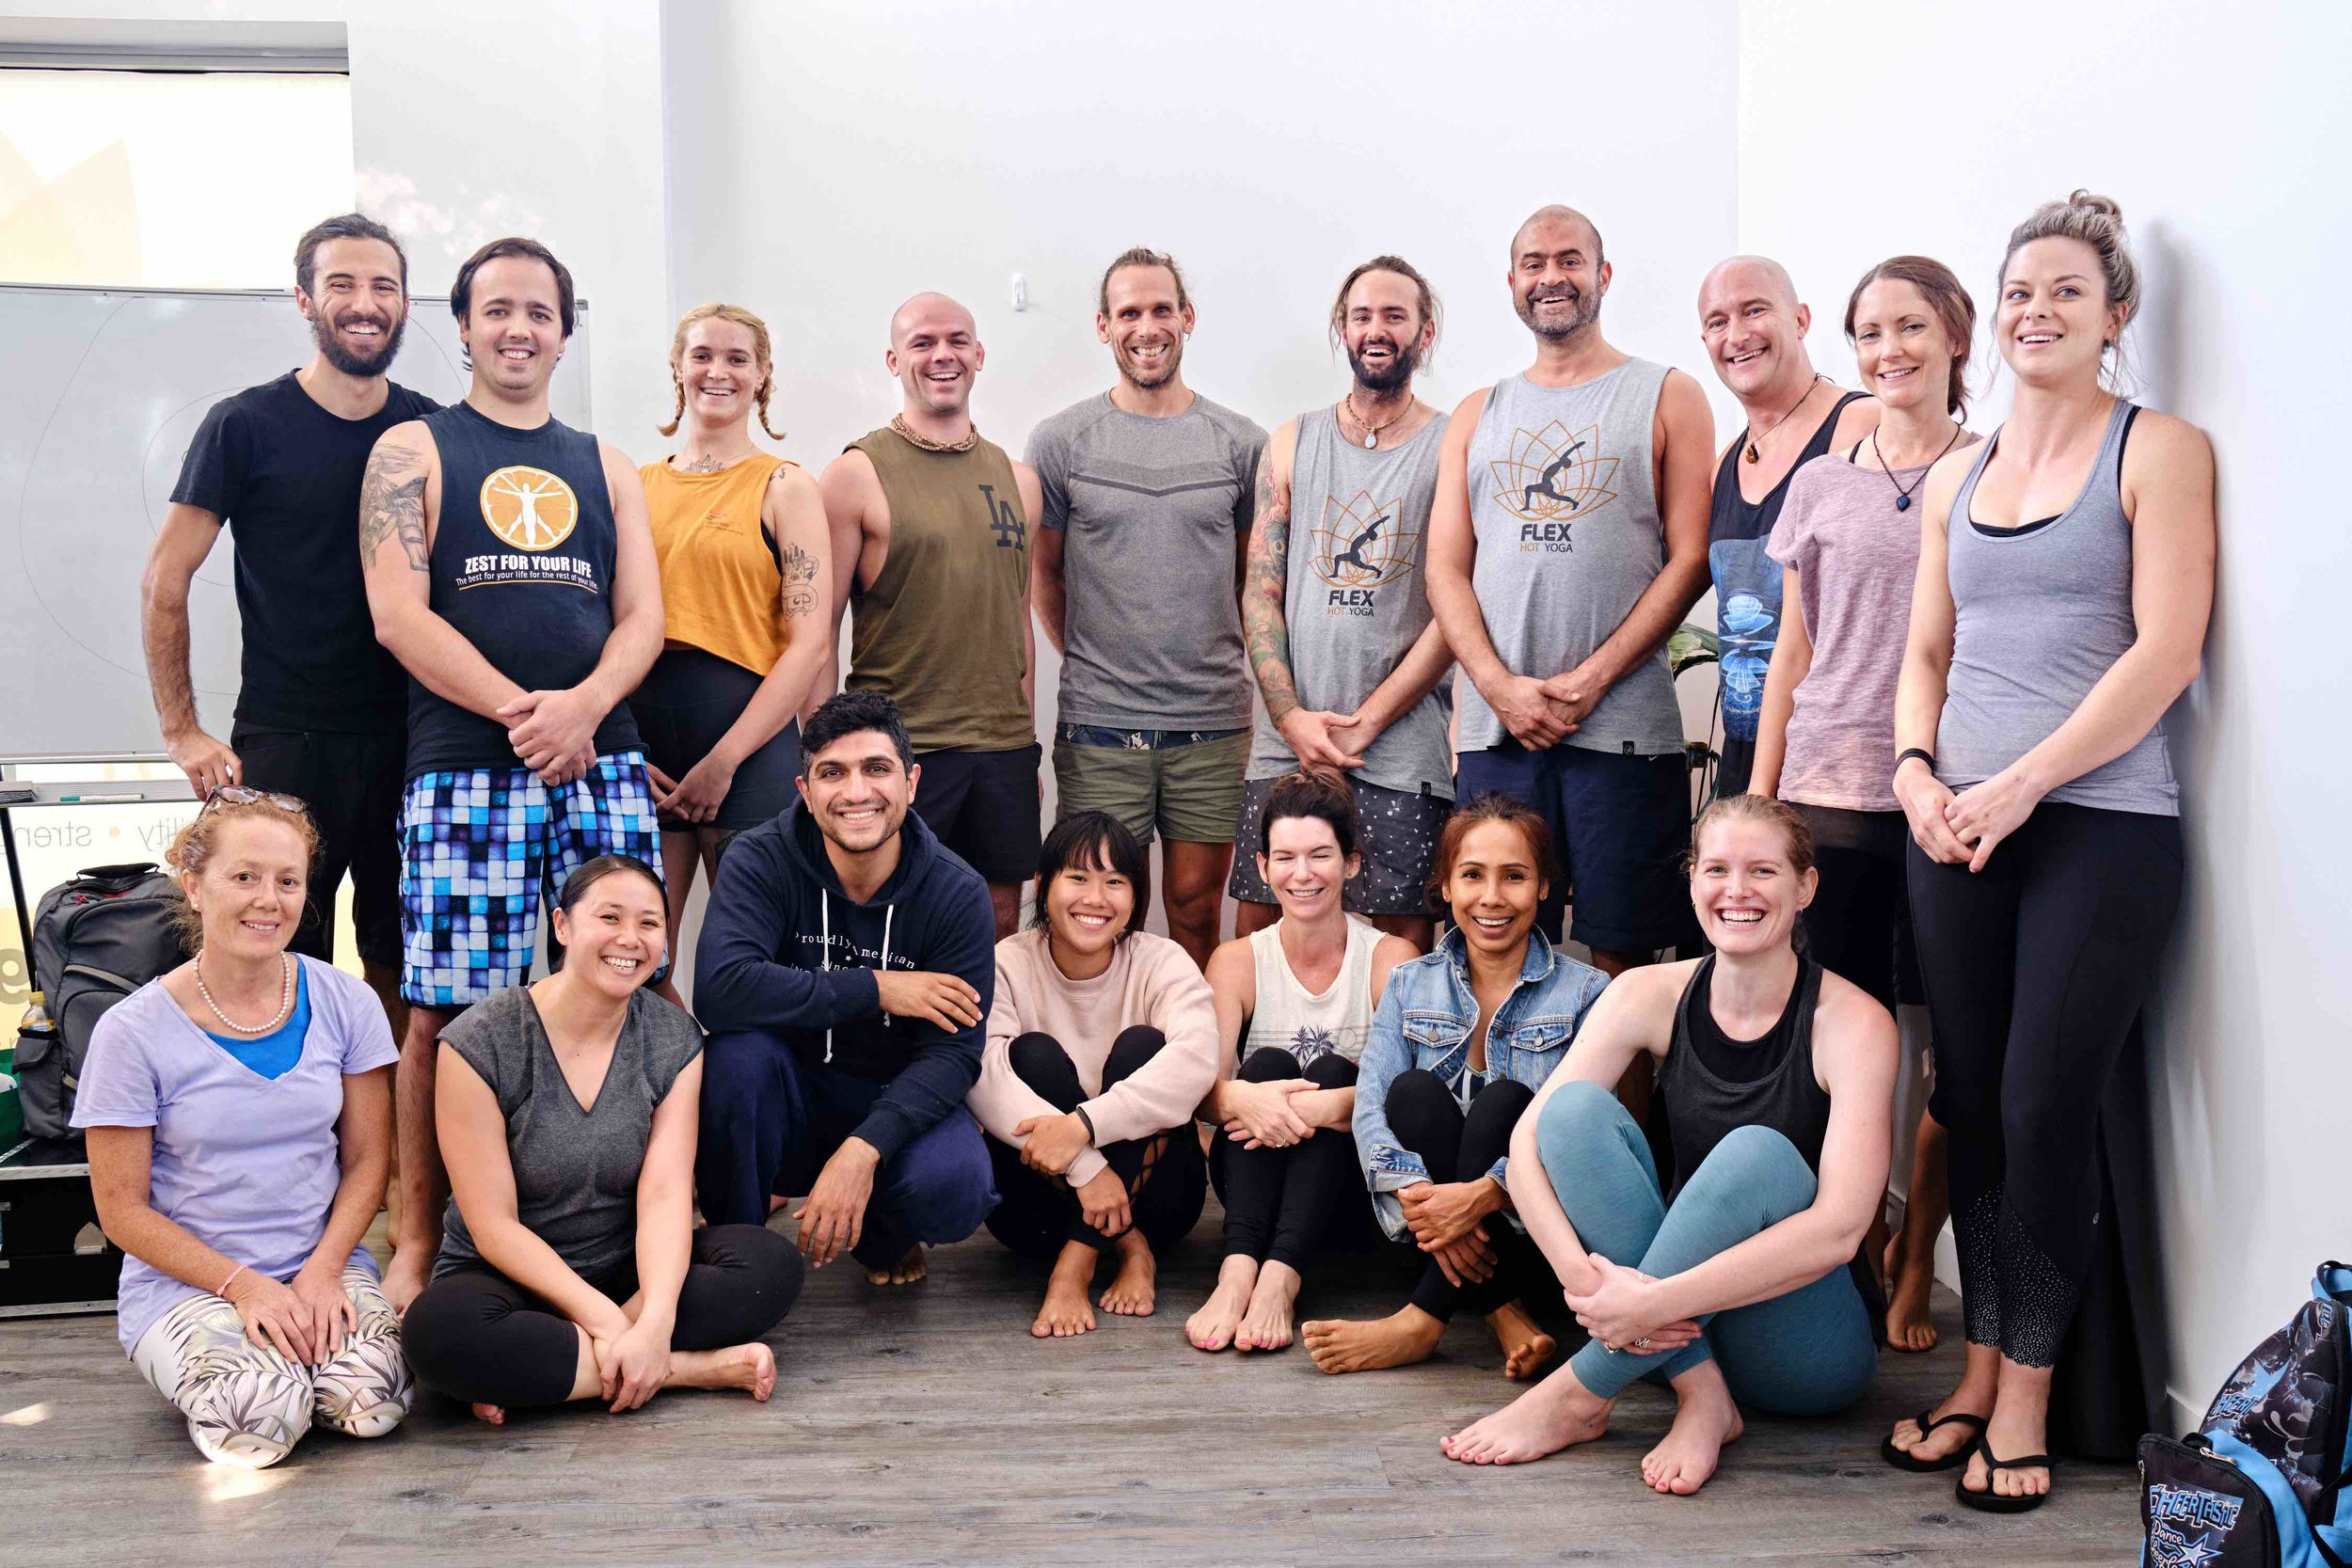 Flex Yoga Teacher Training Guarantee - Join us for an unforgettable journey of growth and discovery and we promise you'll be ready to teach by the end of this training!16 spots only. Apply now, before all spots are taken.Dates: 28 March – 26 July 2020 (4 months part-time, weekends only)March: 28th + 29th,April: 4th + 5th, 18th +19thMay: 2nd + 3rd, 16th + 17th, 30th + 31stJune: 13th + 14th, 27th + 28thJuly: 11th + 12th, 25th + 26thYour investment: Choose from a variety of payment options:Upfront payment: $3,995 Easy payment plan: $819 x 5 (1 deposit then remaining 4 payments on 1st of each month)Personal payment plan: Can be tailored to suit your budgetEarly Bird cut off dates:>> Save $400 if you book by 30 November 2019>> Save $300 if you book by 31 December 2019>> Save $200 if you book by 31 January 2019>> Save $100 if you book by 29 February 2020